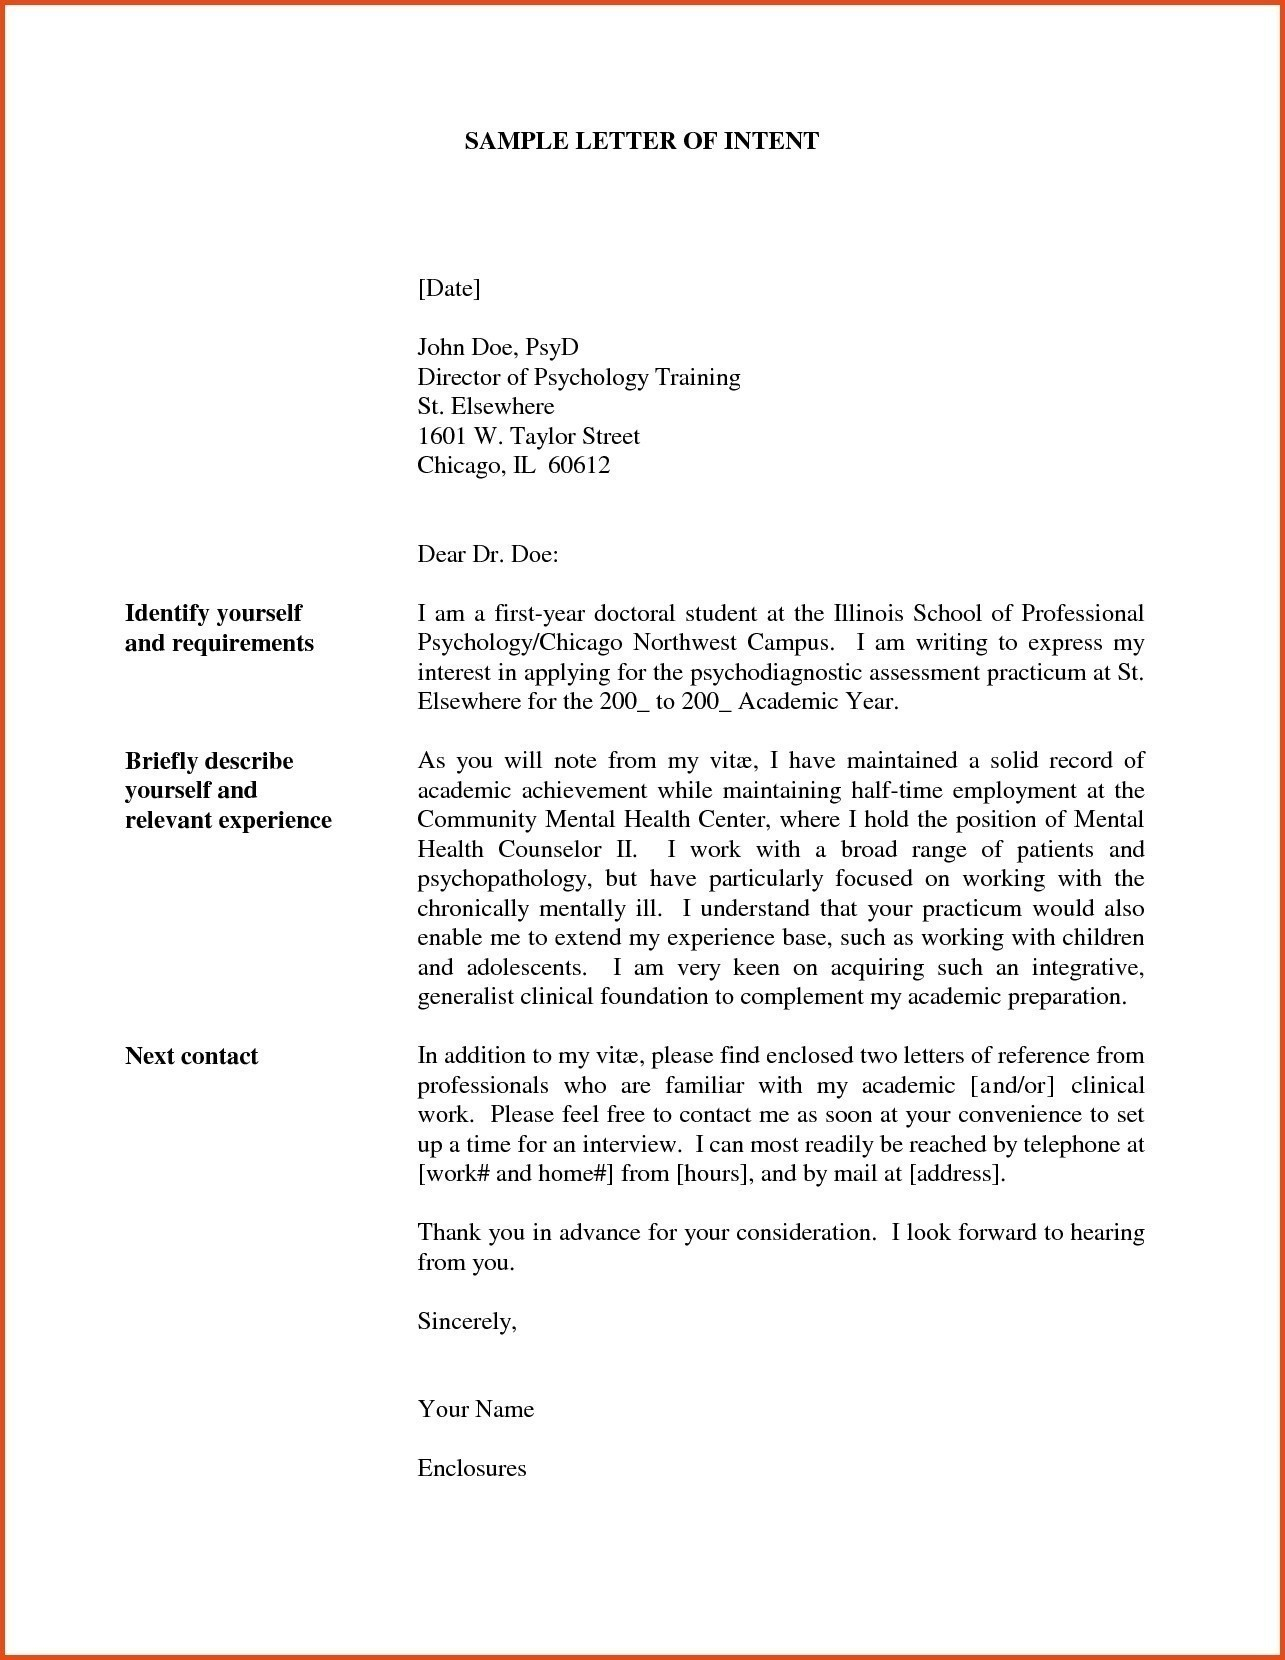 Free Letter Of Intent for A Job Template - Letter Intent for Job Opening New Letter Intention Job New Letter